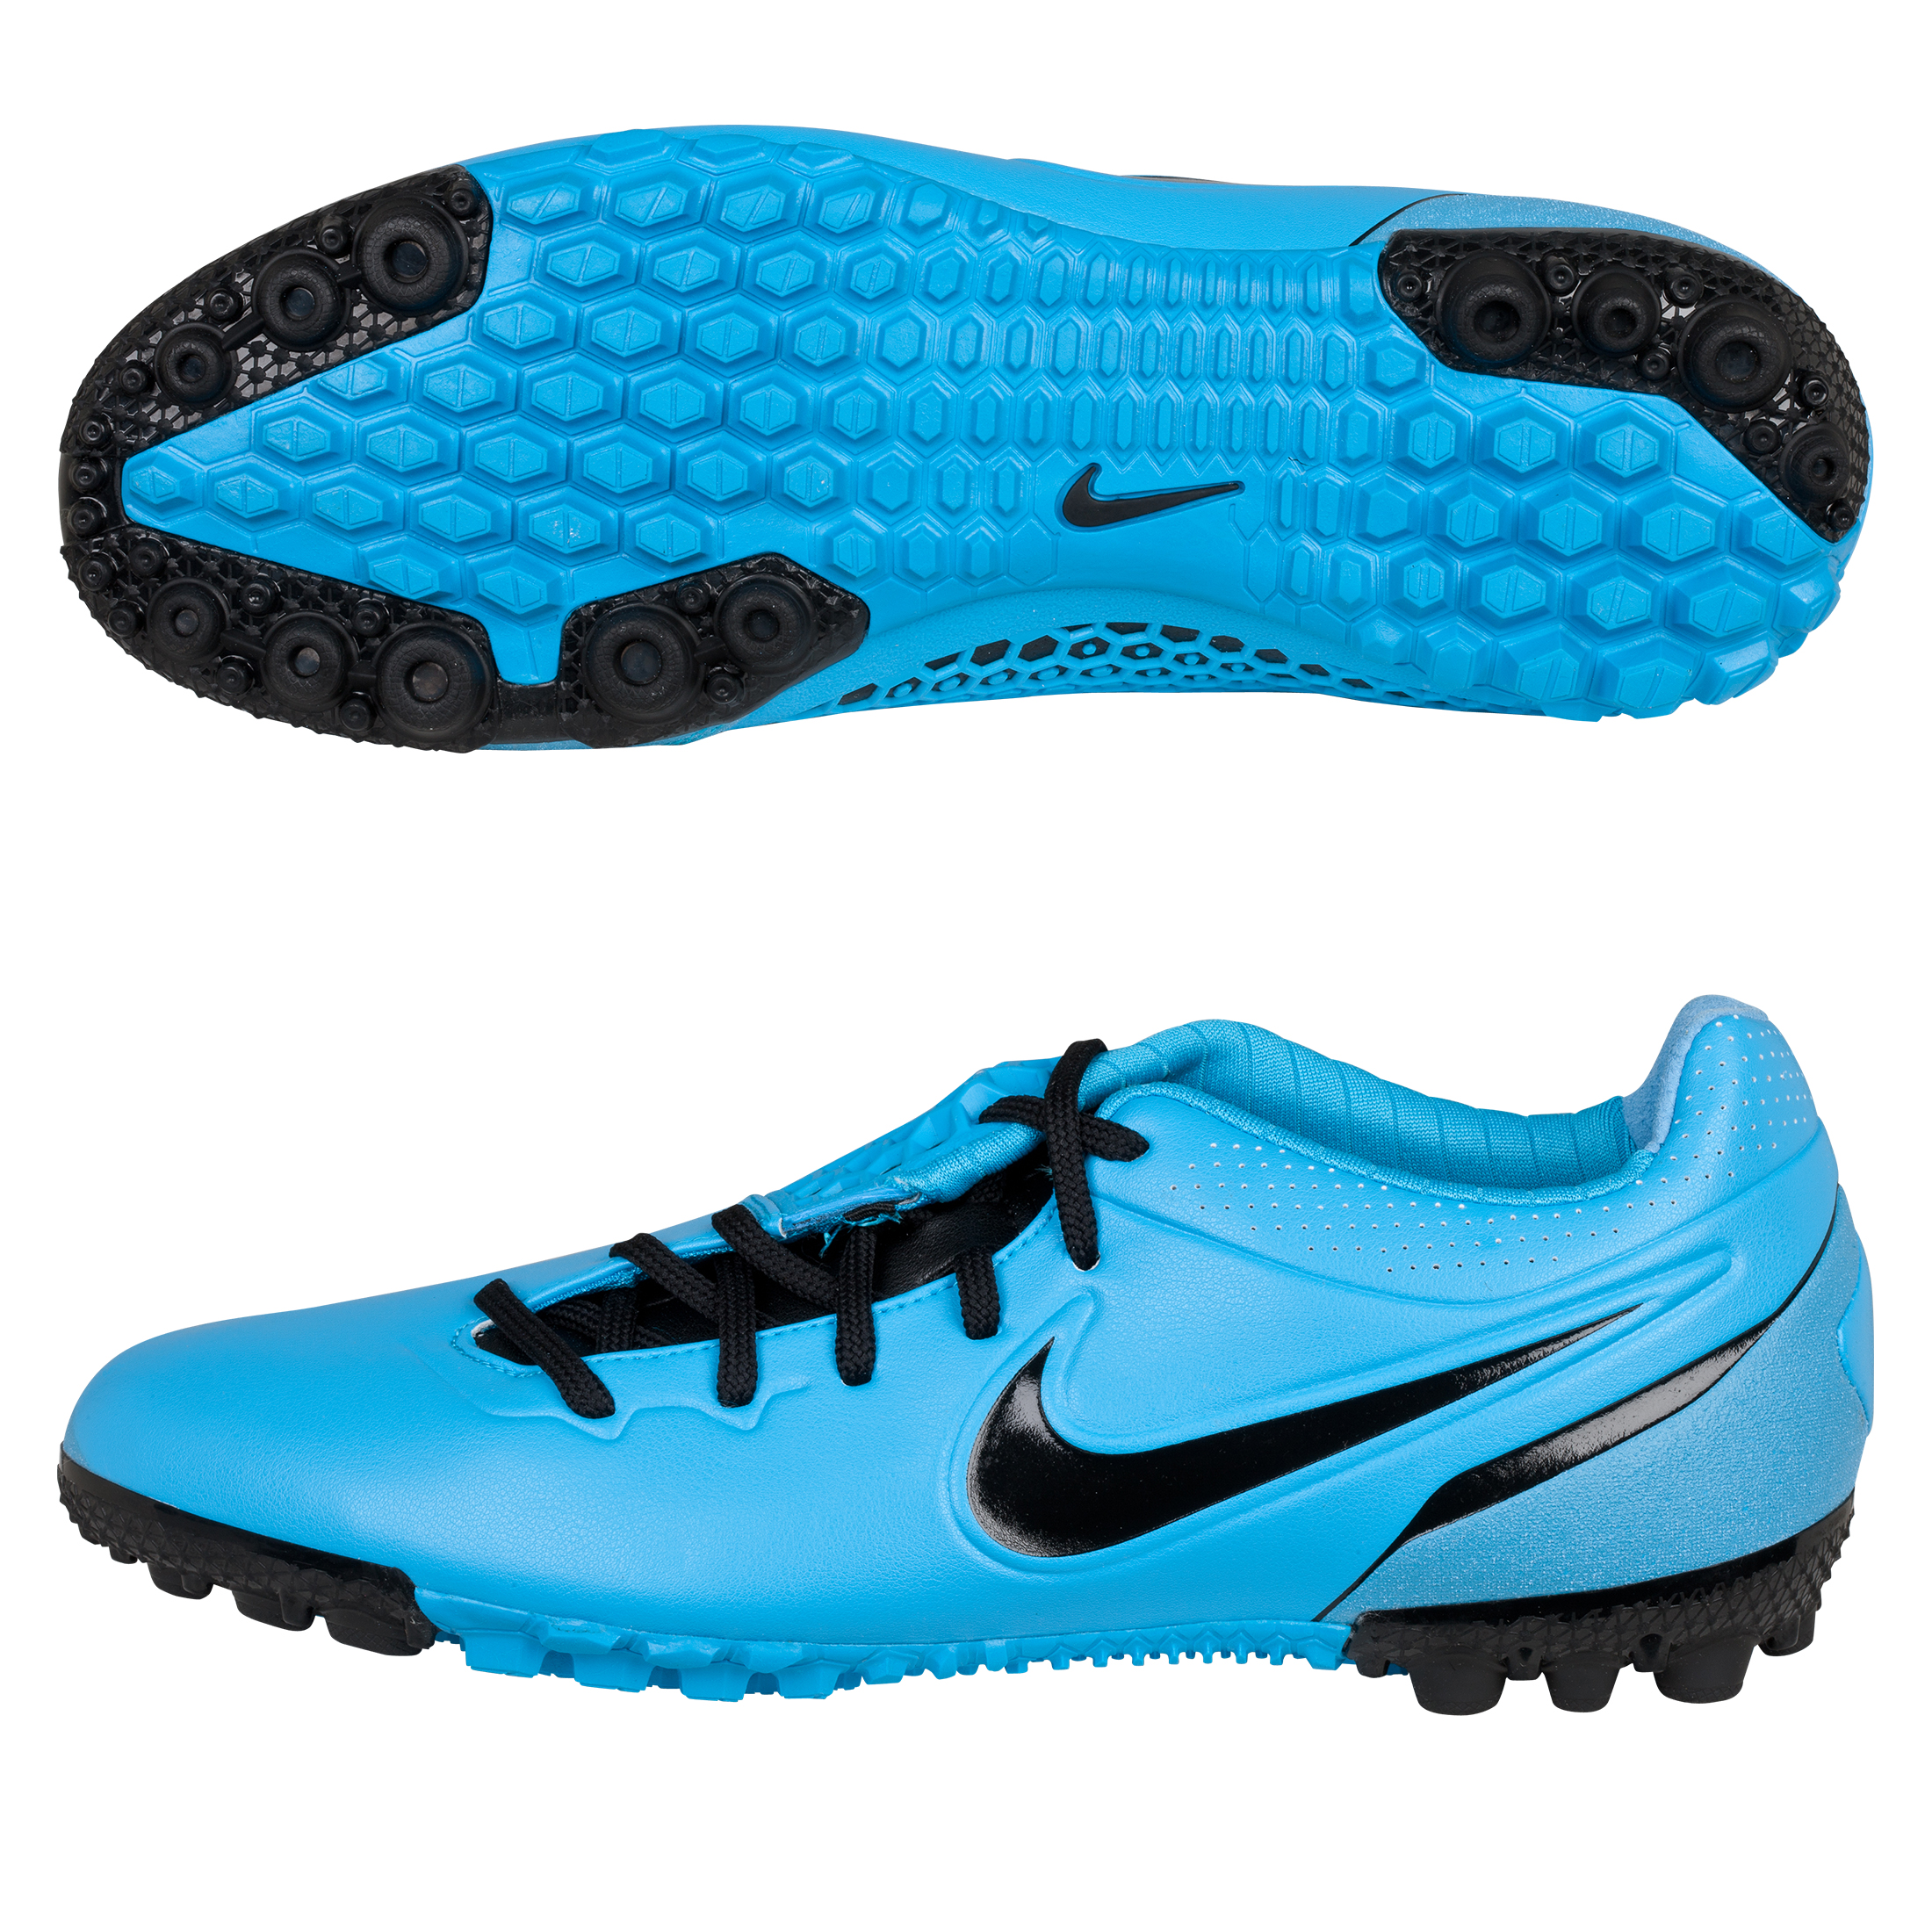 Nike Nike5 Bomba Finale Trainers - Current Blue/Black